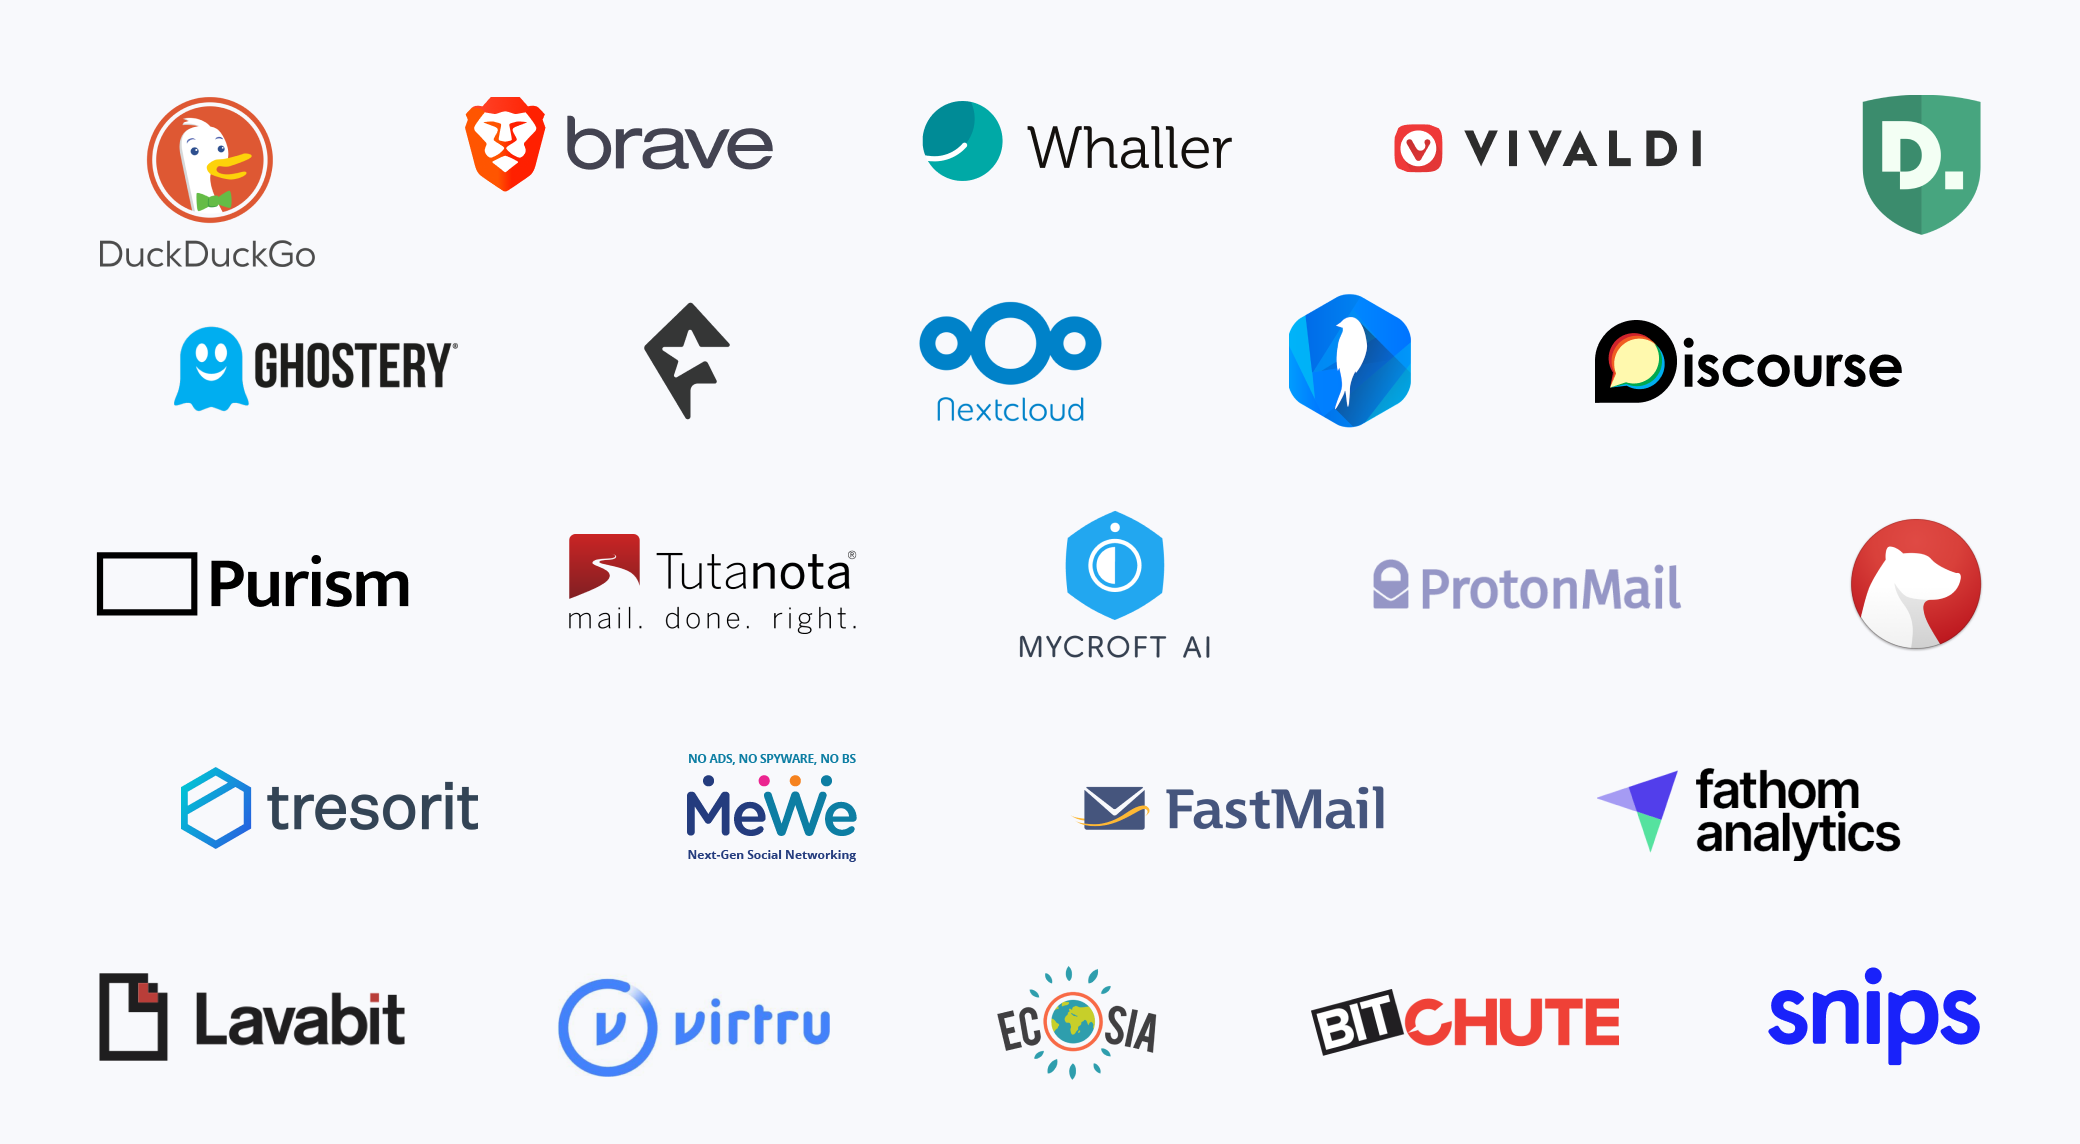 23 Tech Companies Back CCPA Amendment to Make It Stronger: Privacy for All Act of 2019